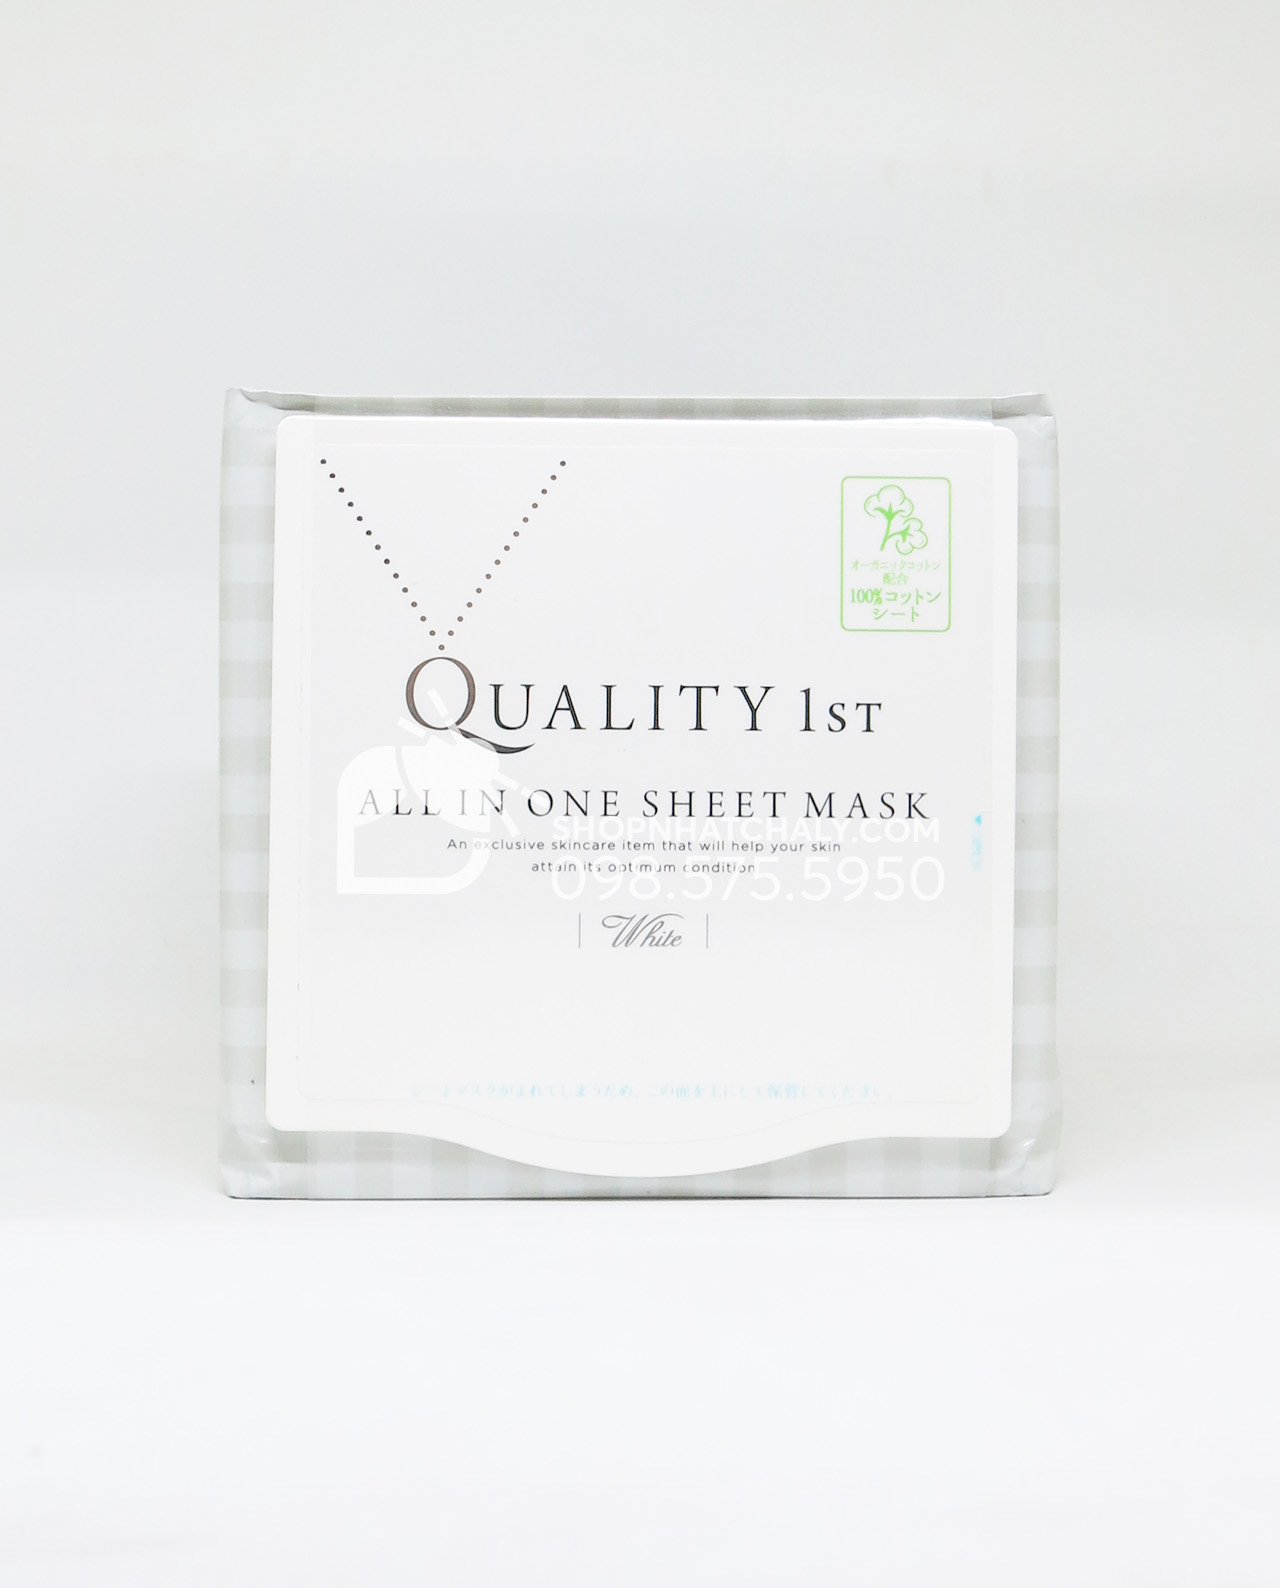 Mặt nạ Quality 1st All in One Sheet Mask màu trắng full size 30 miếng dạng hộp mới